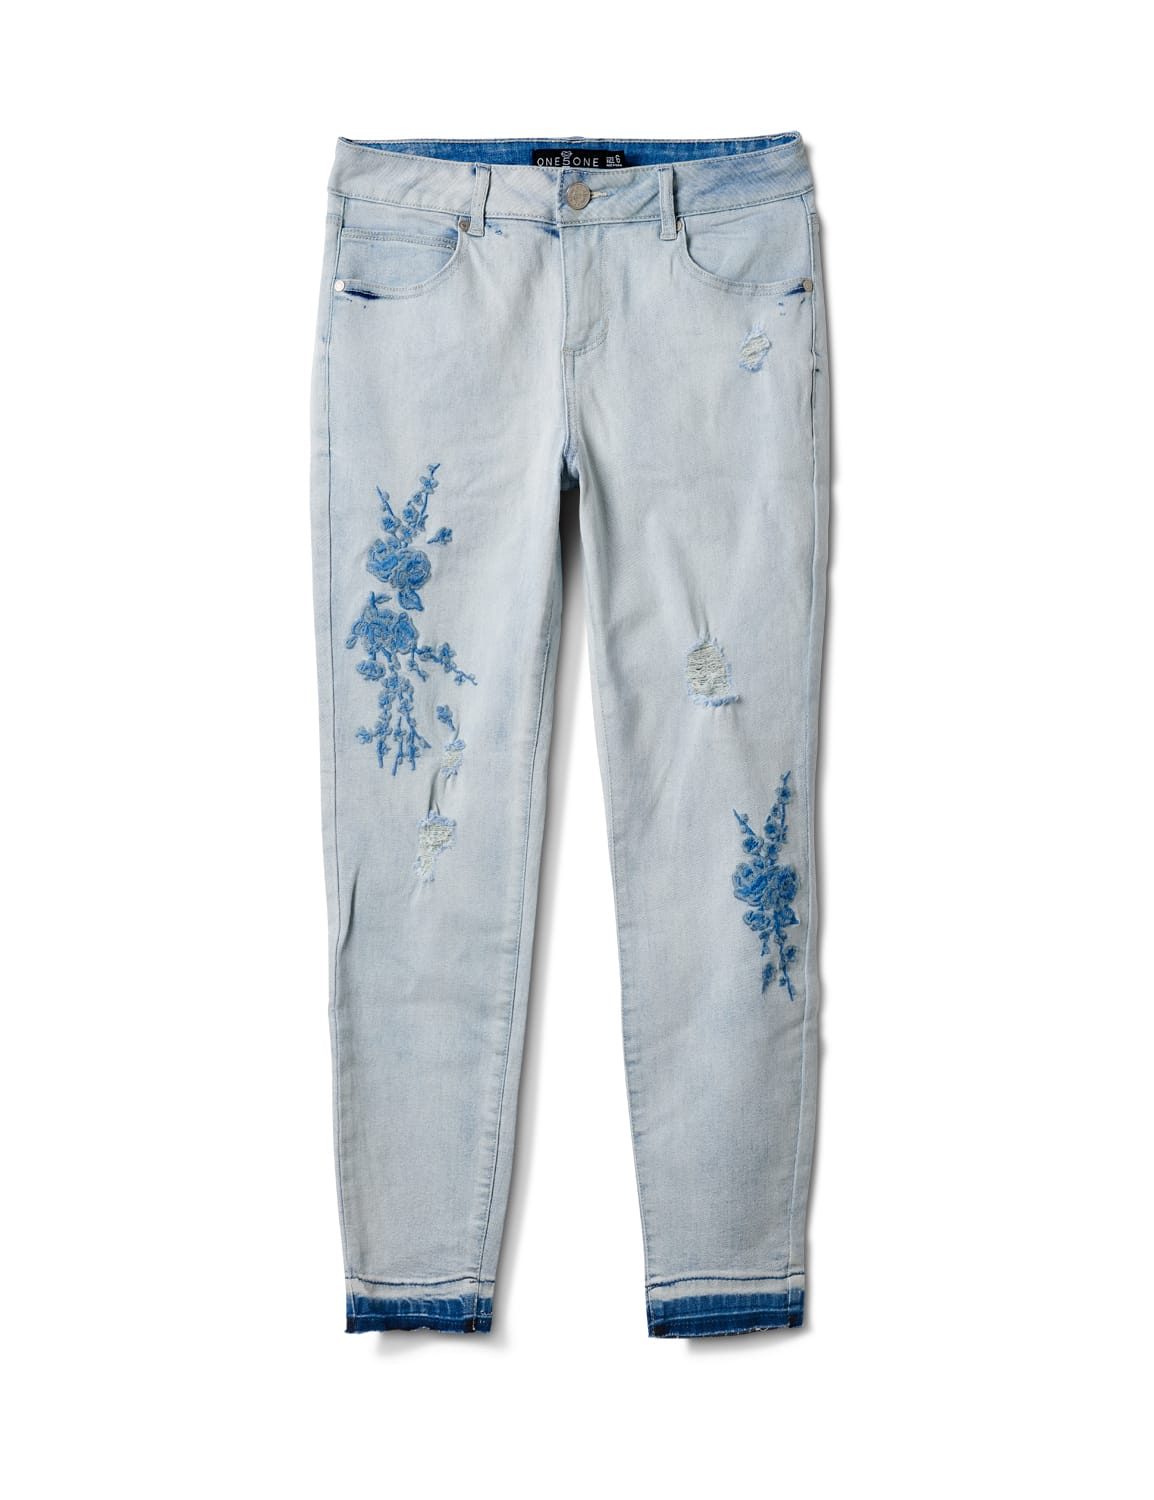 Mid Rise Skinny Jean With Embroidery On The Leg - Bleach - Front